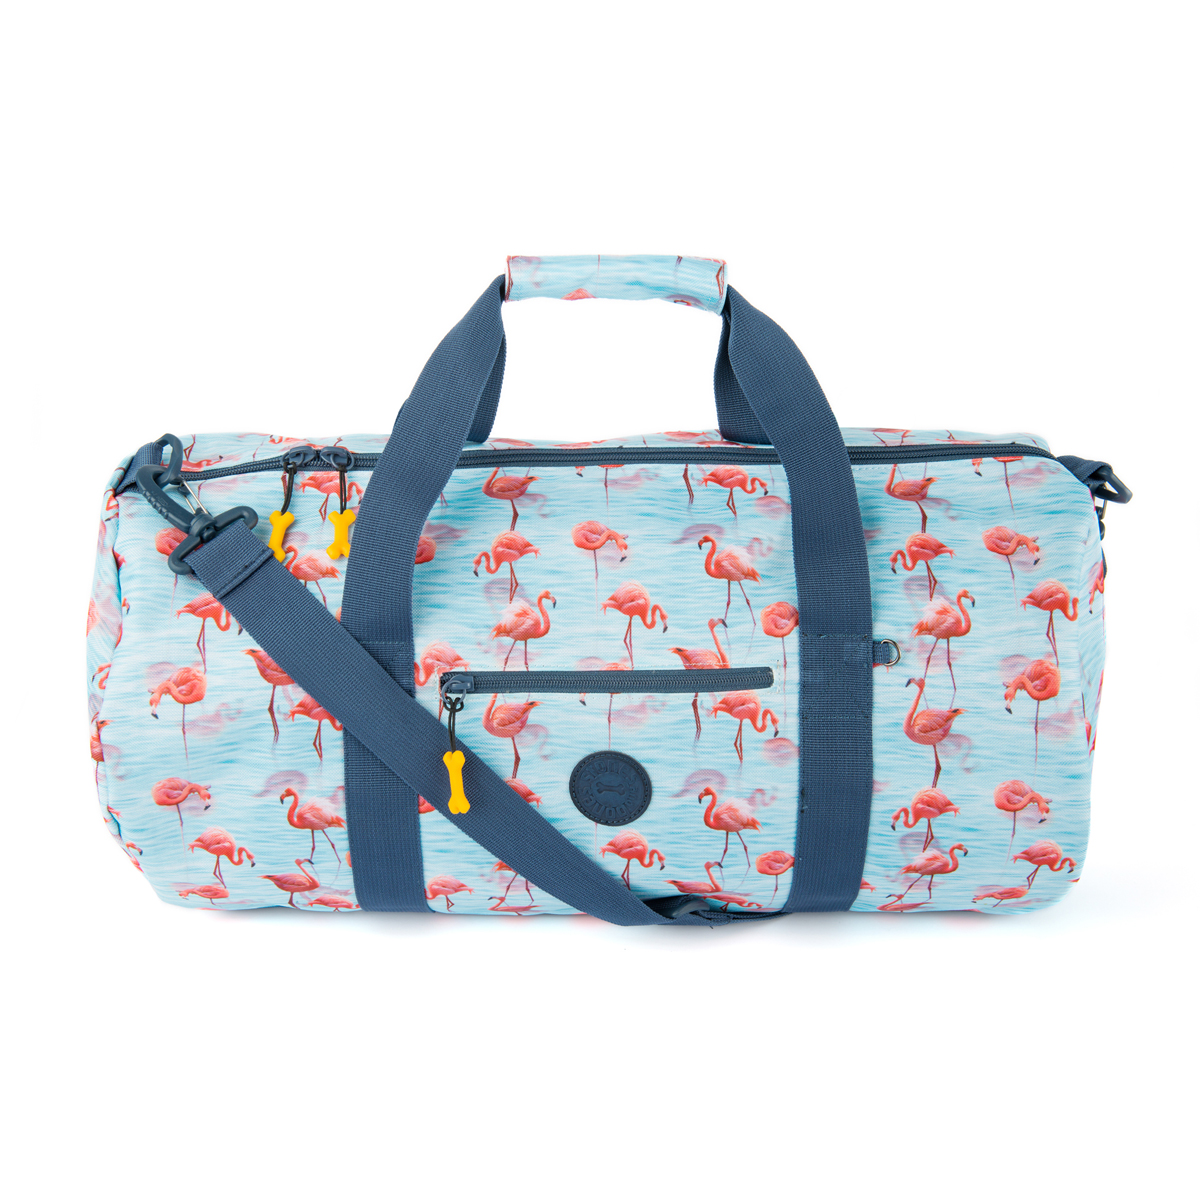 Sac de sport \'Stones and Bones\' turquoise rose (flamant rose) - 51x25x25 cm - [Q0542]